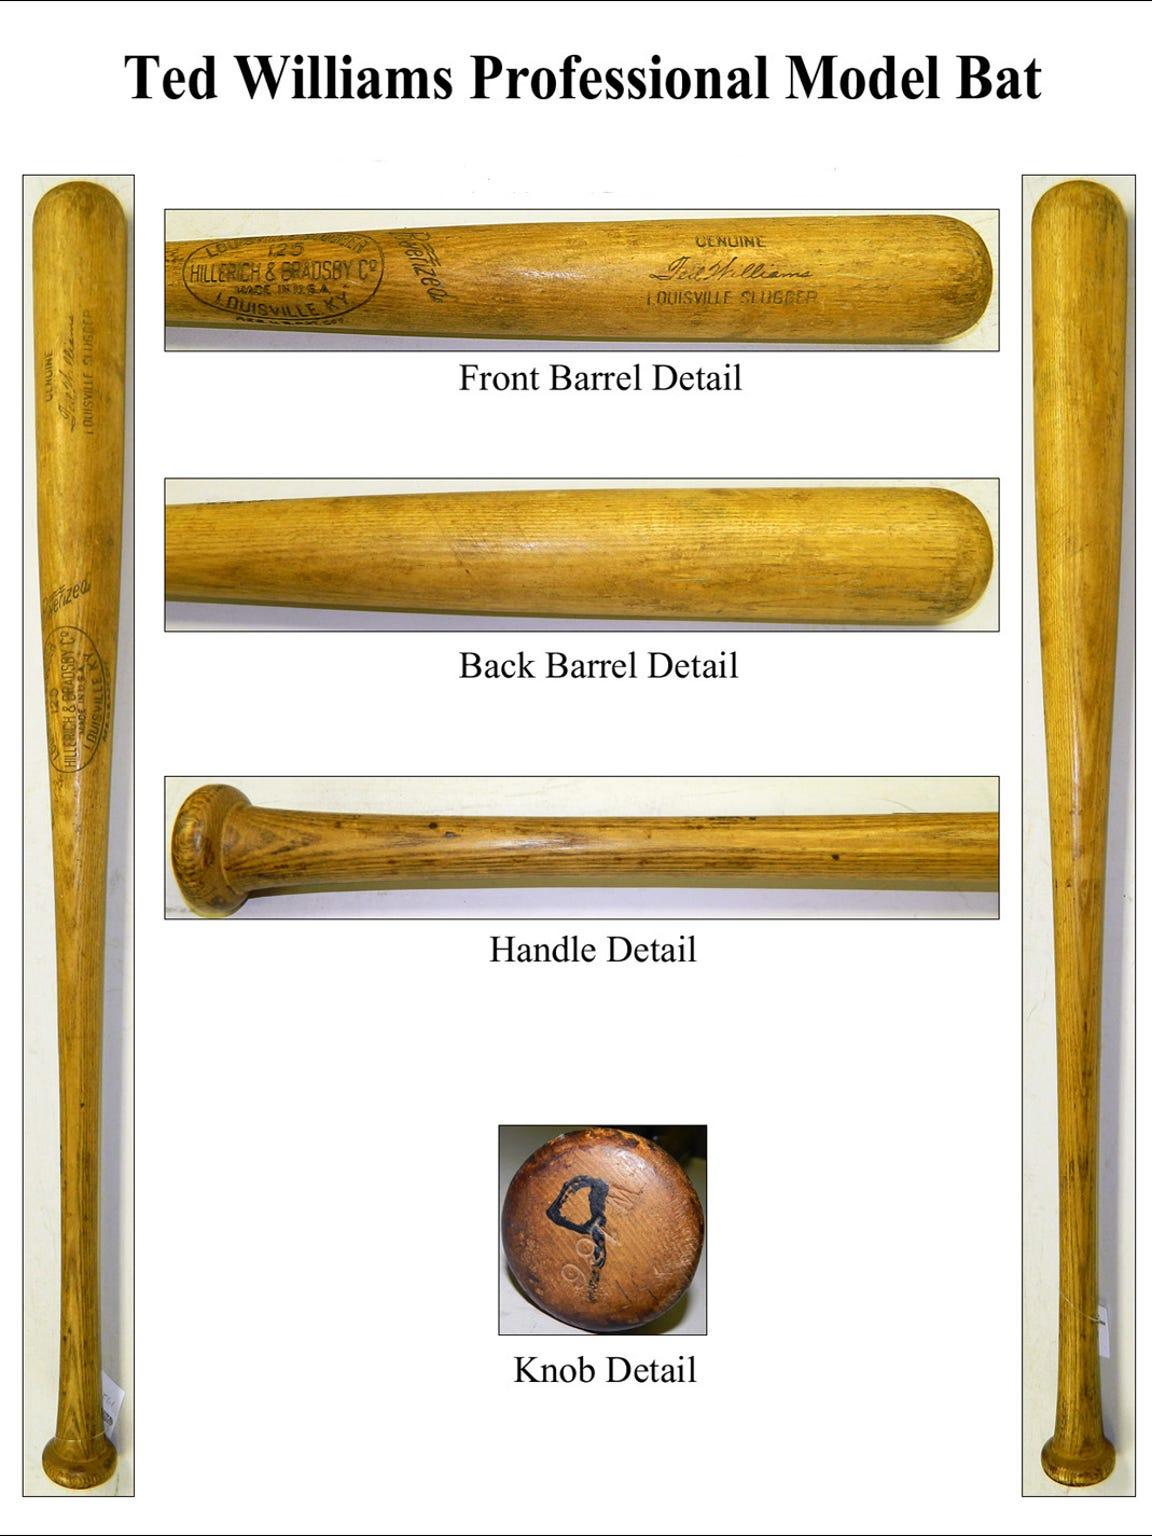 A baseball bat model used by Ted Williams similar to